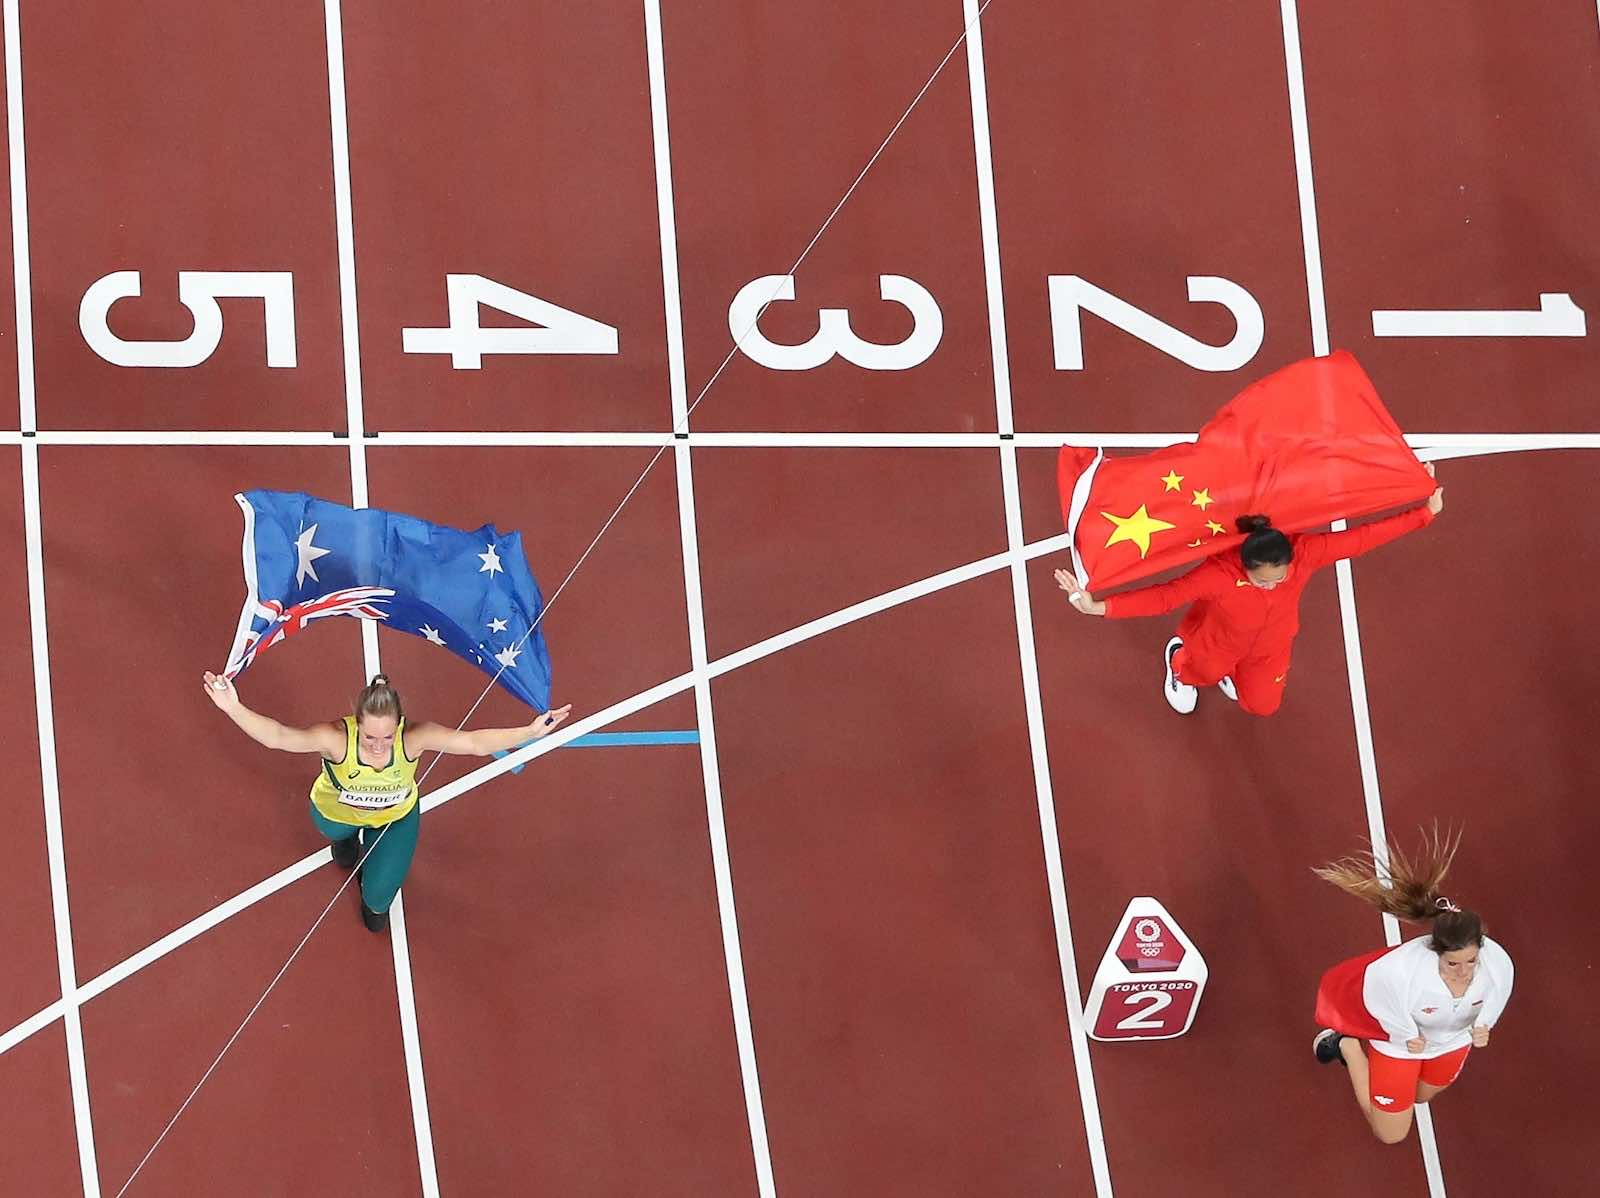 Kelsey-Lee Barber of Australia and Liu Shiying of China celebrate after the women's javelin throw final at the Tokyo 2020 Olympic Games, 6 August (Lui Siu Wai/Xinhua via Getty Images)